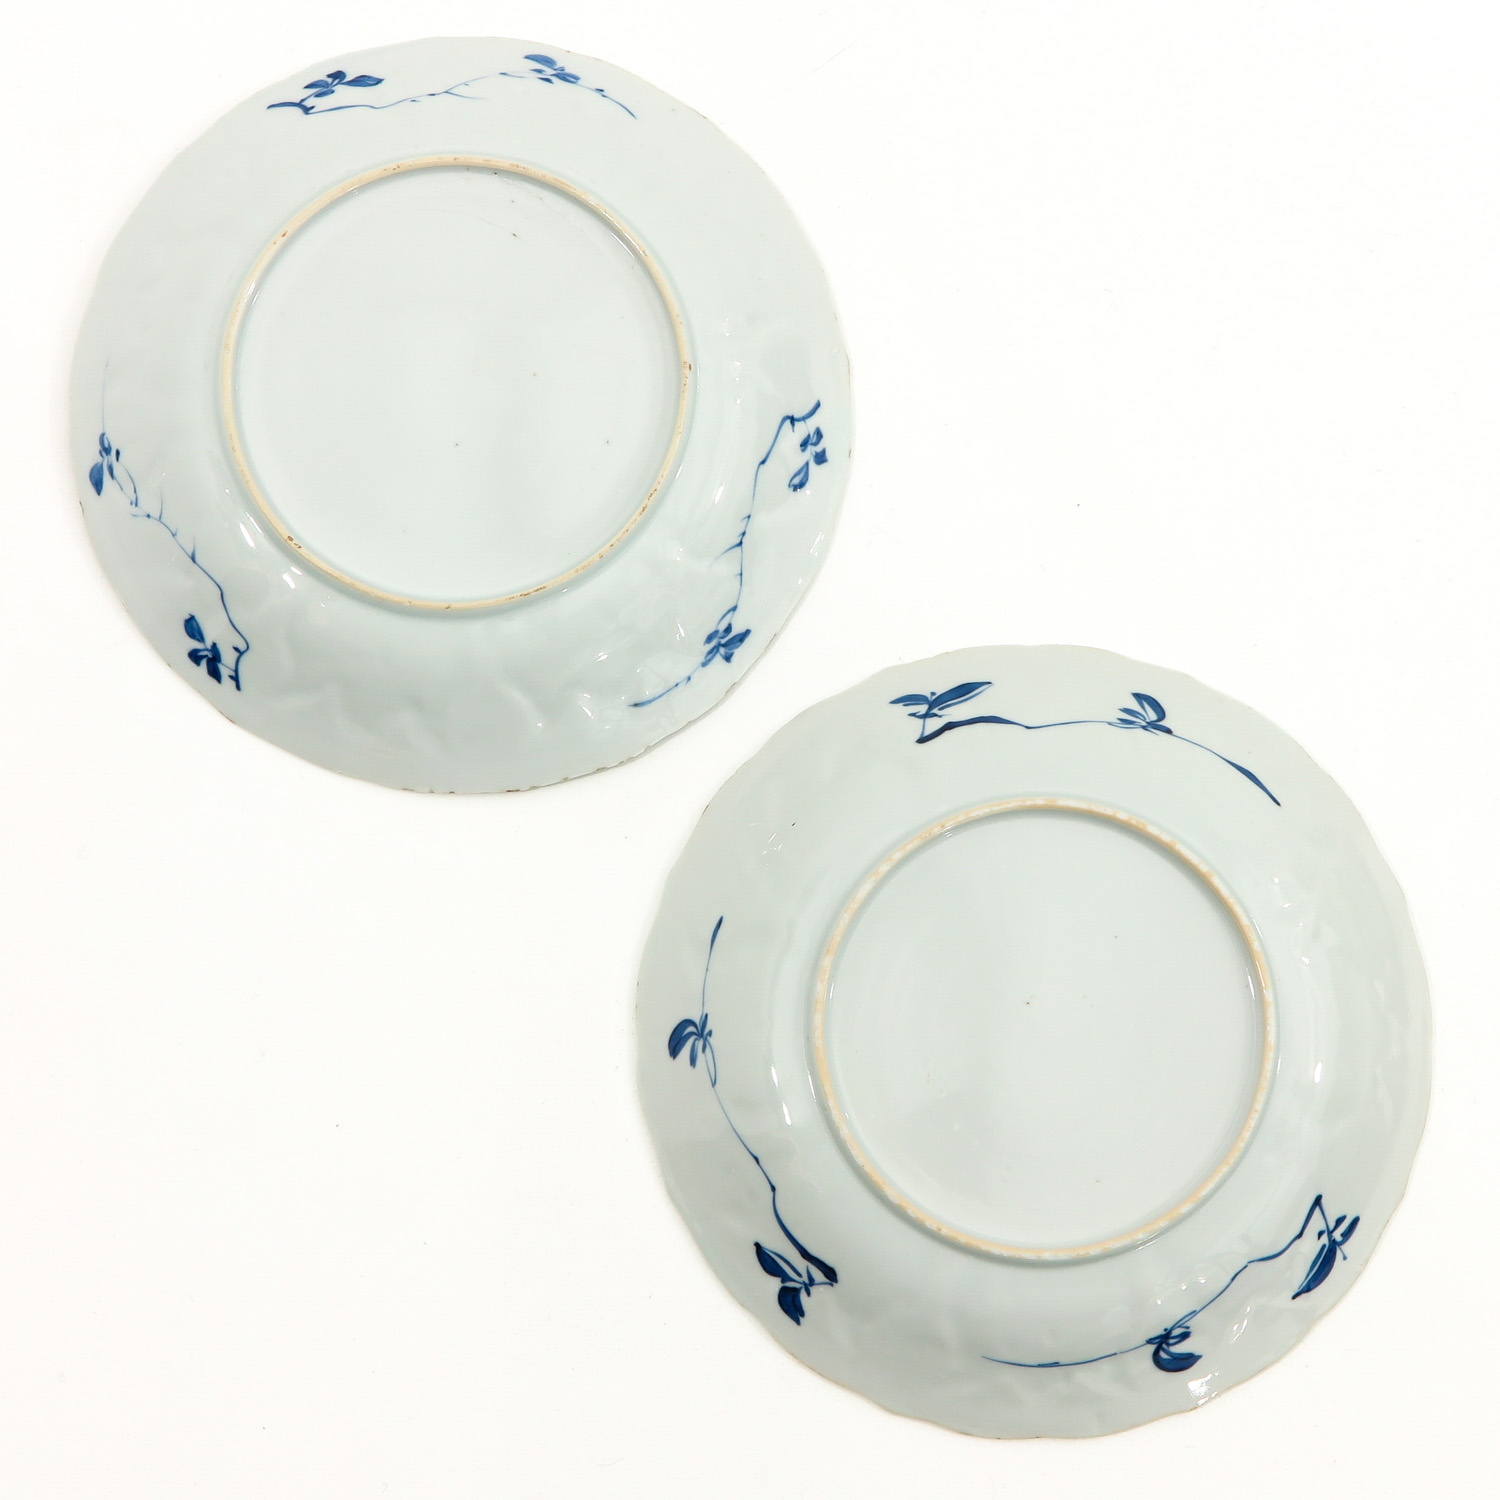 A Collection of 6 Blue and White Plates - Image 6 of 10